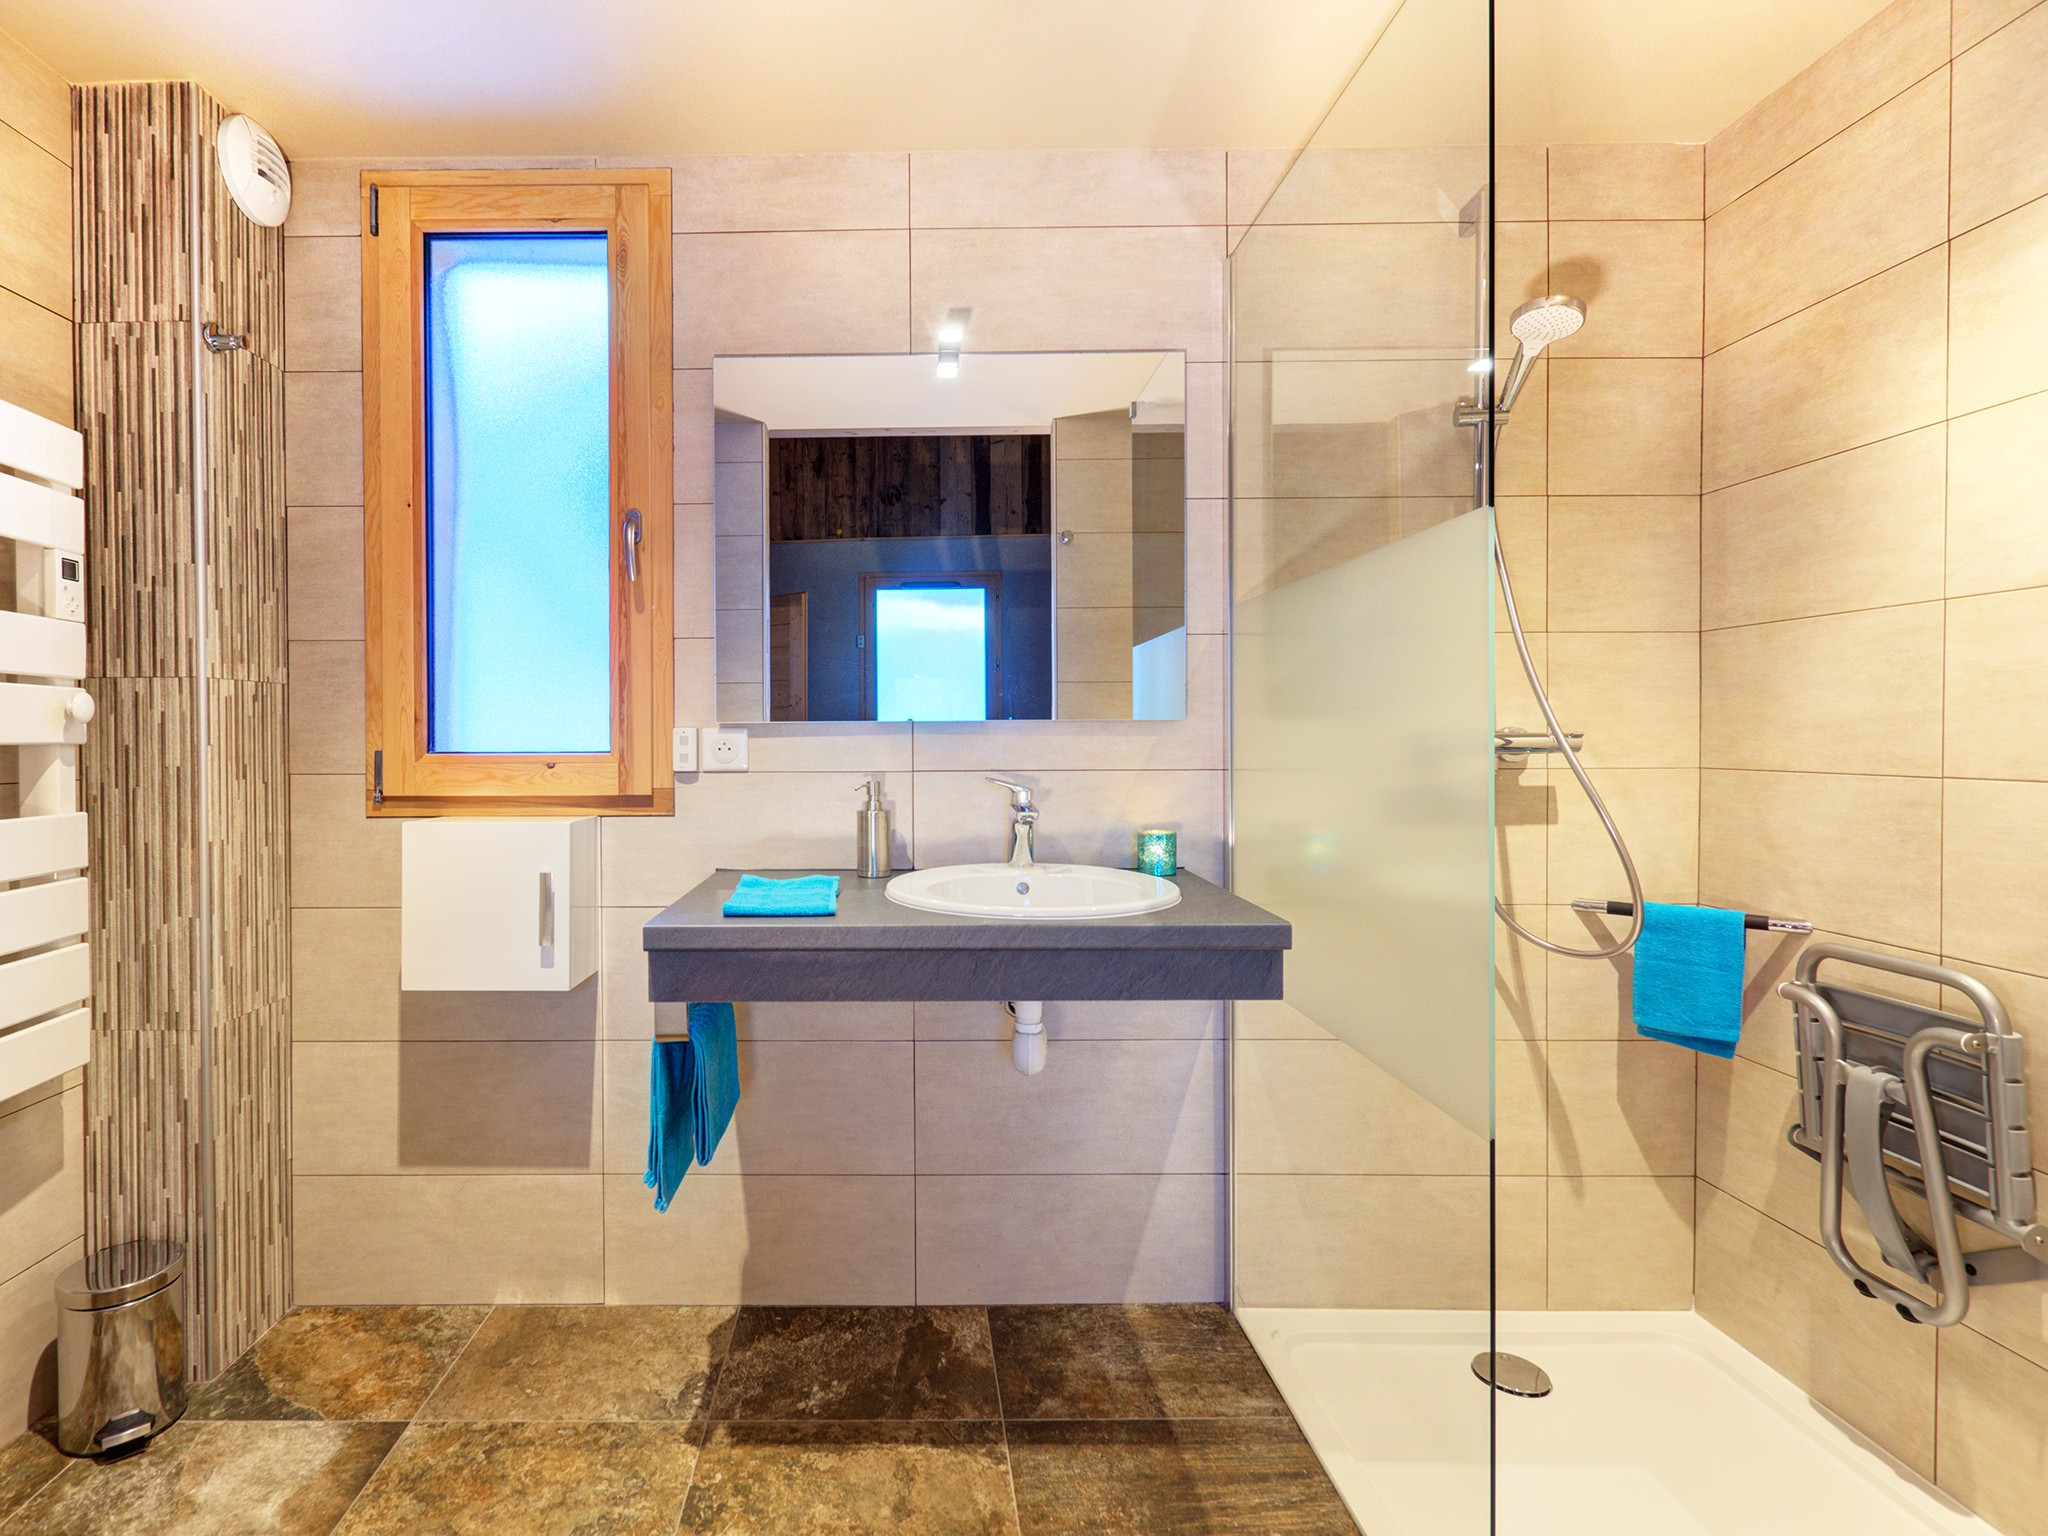 Chalet Ski Dream - bathroom